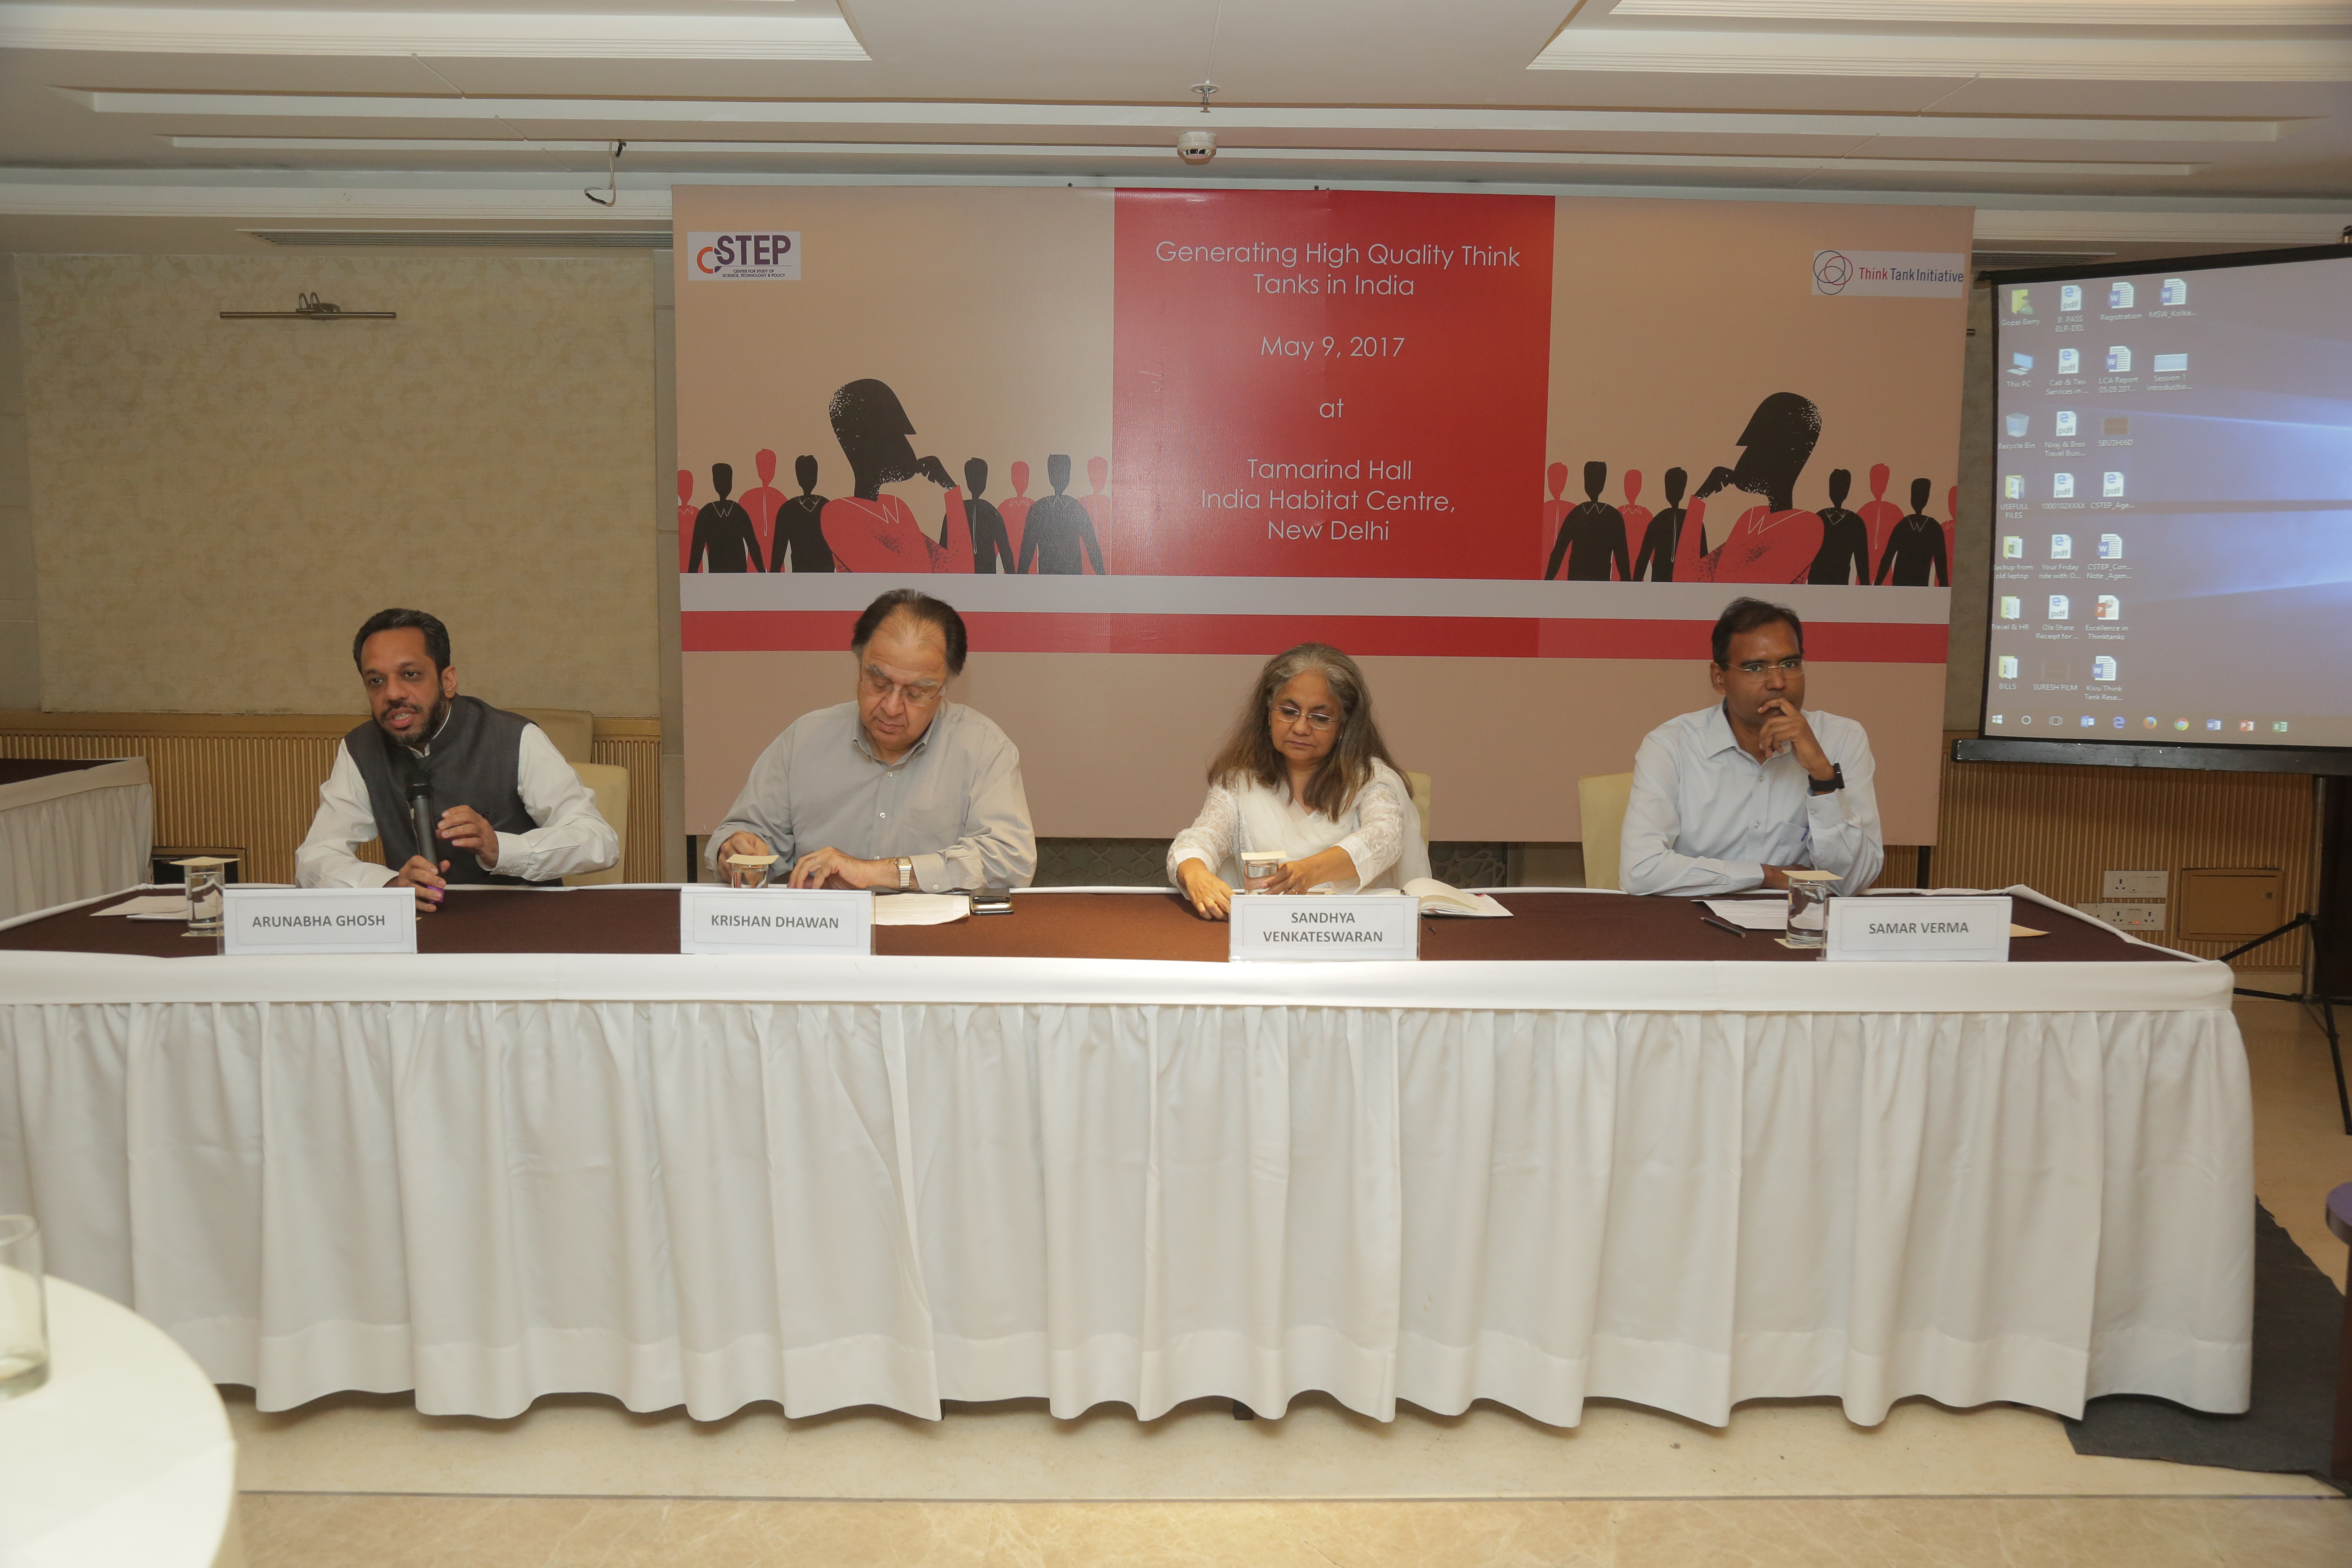 Workshop on Generating High-Quality Think Tanks in India